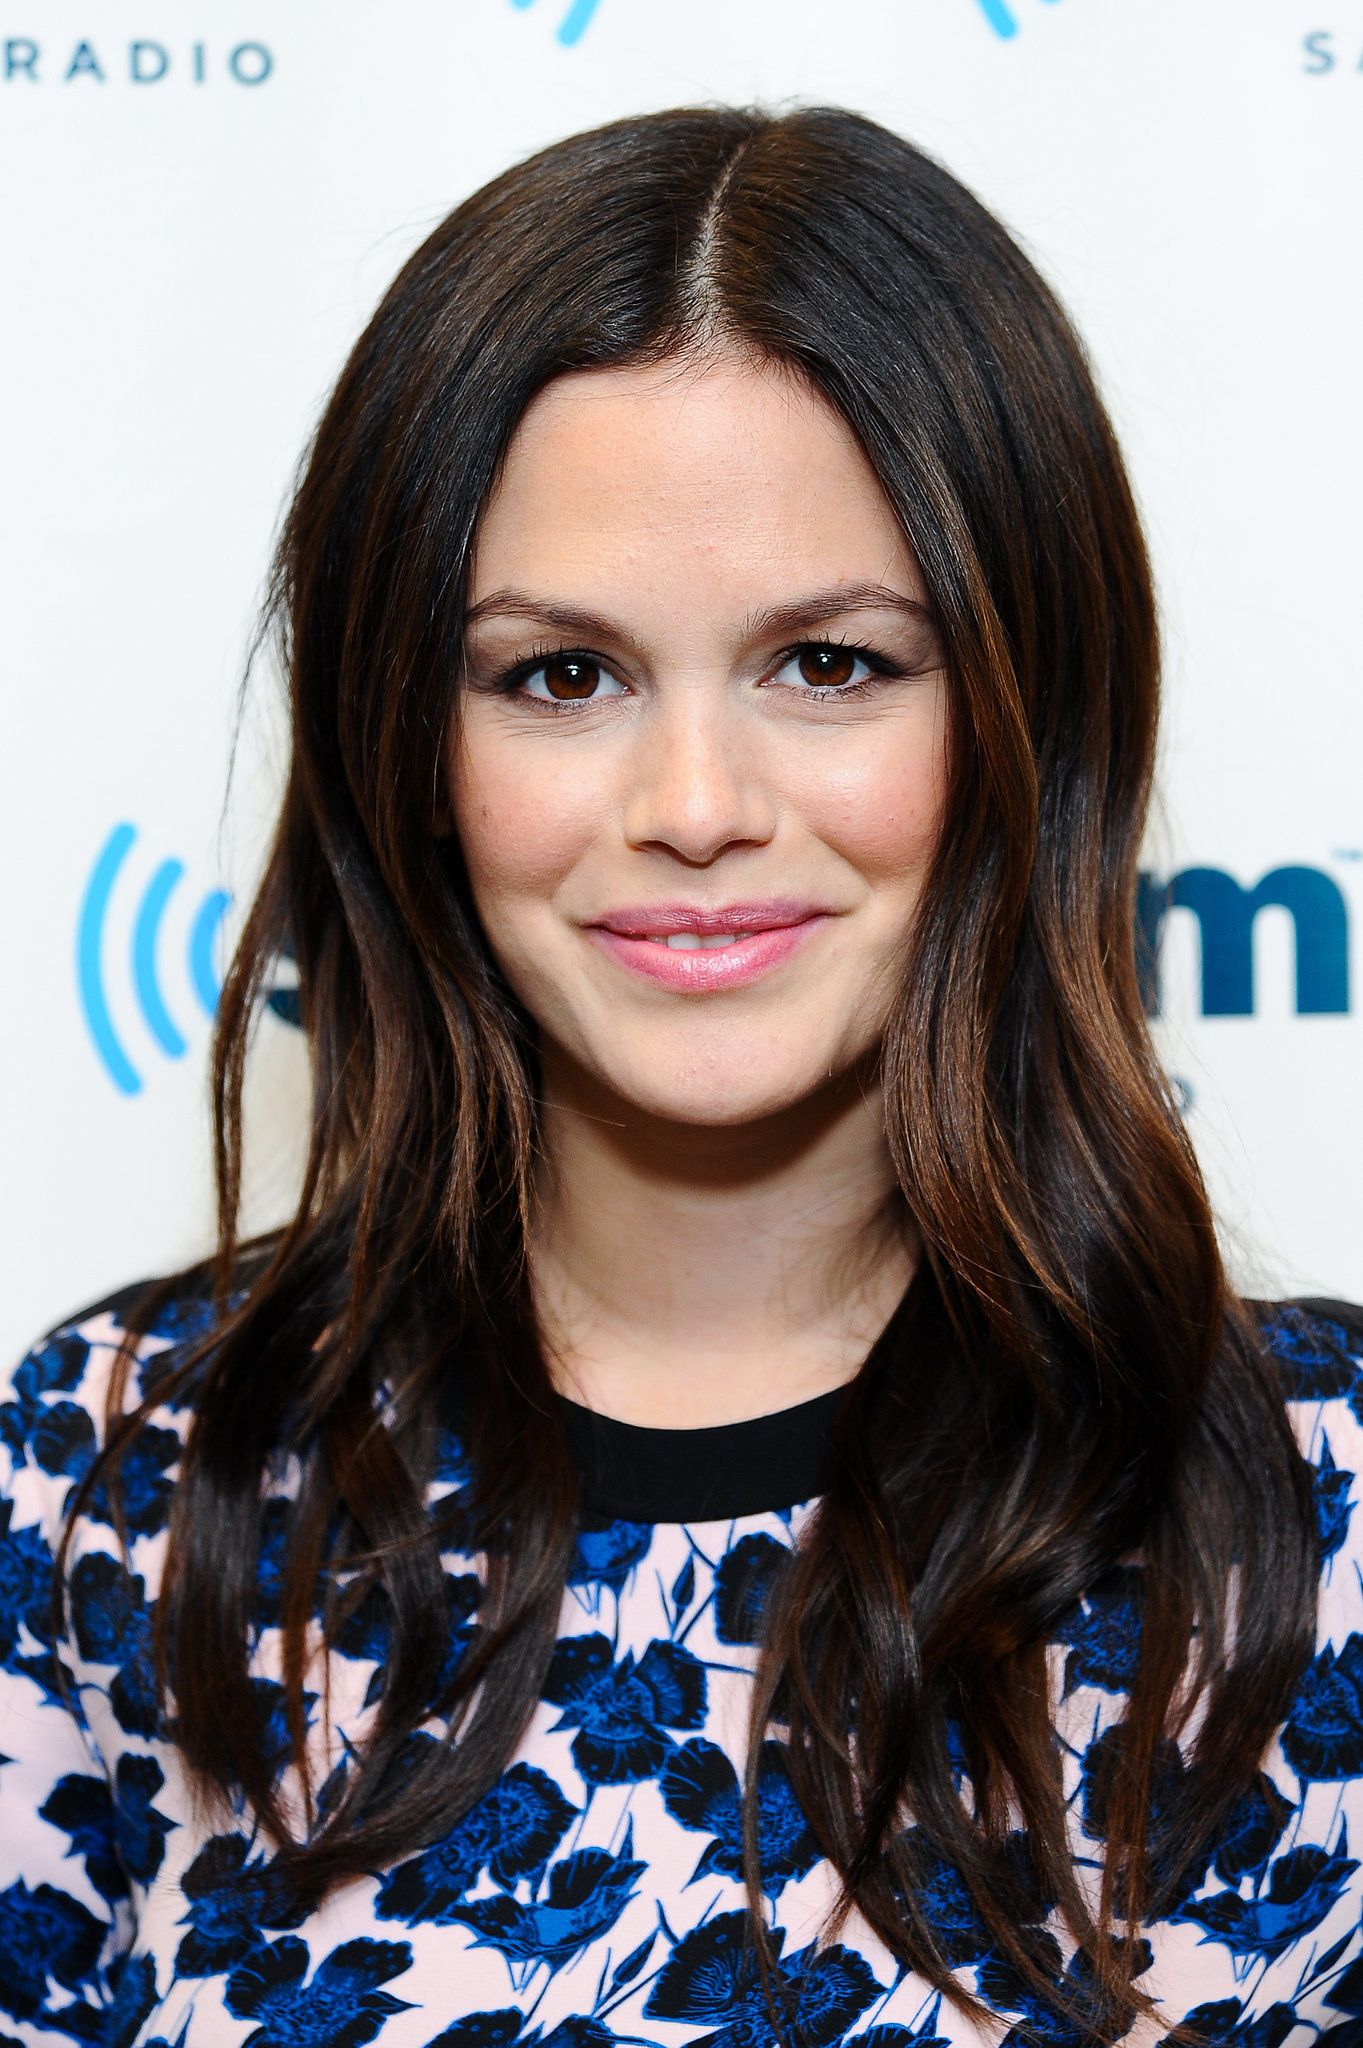 2019 year lifestyle- Hairbeauty and Beauty inspired by rachel bilson